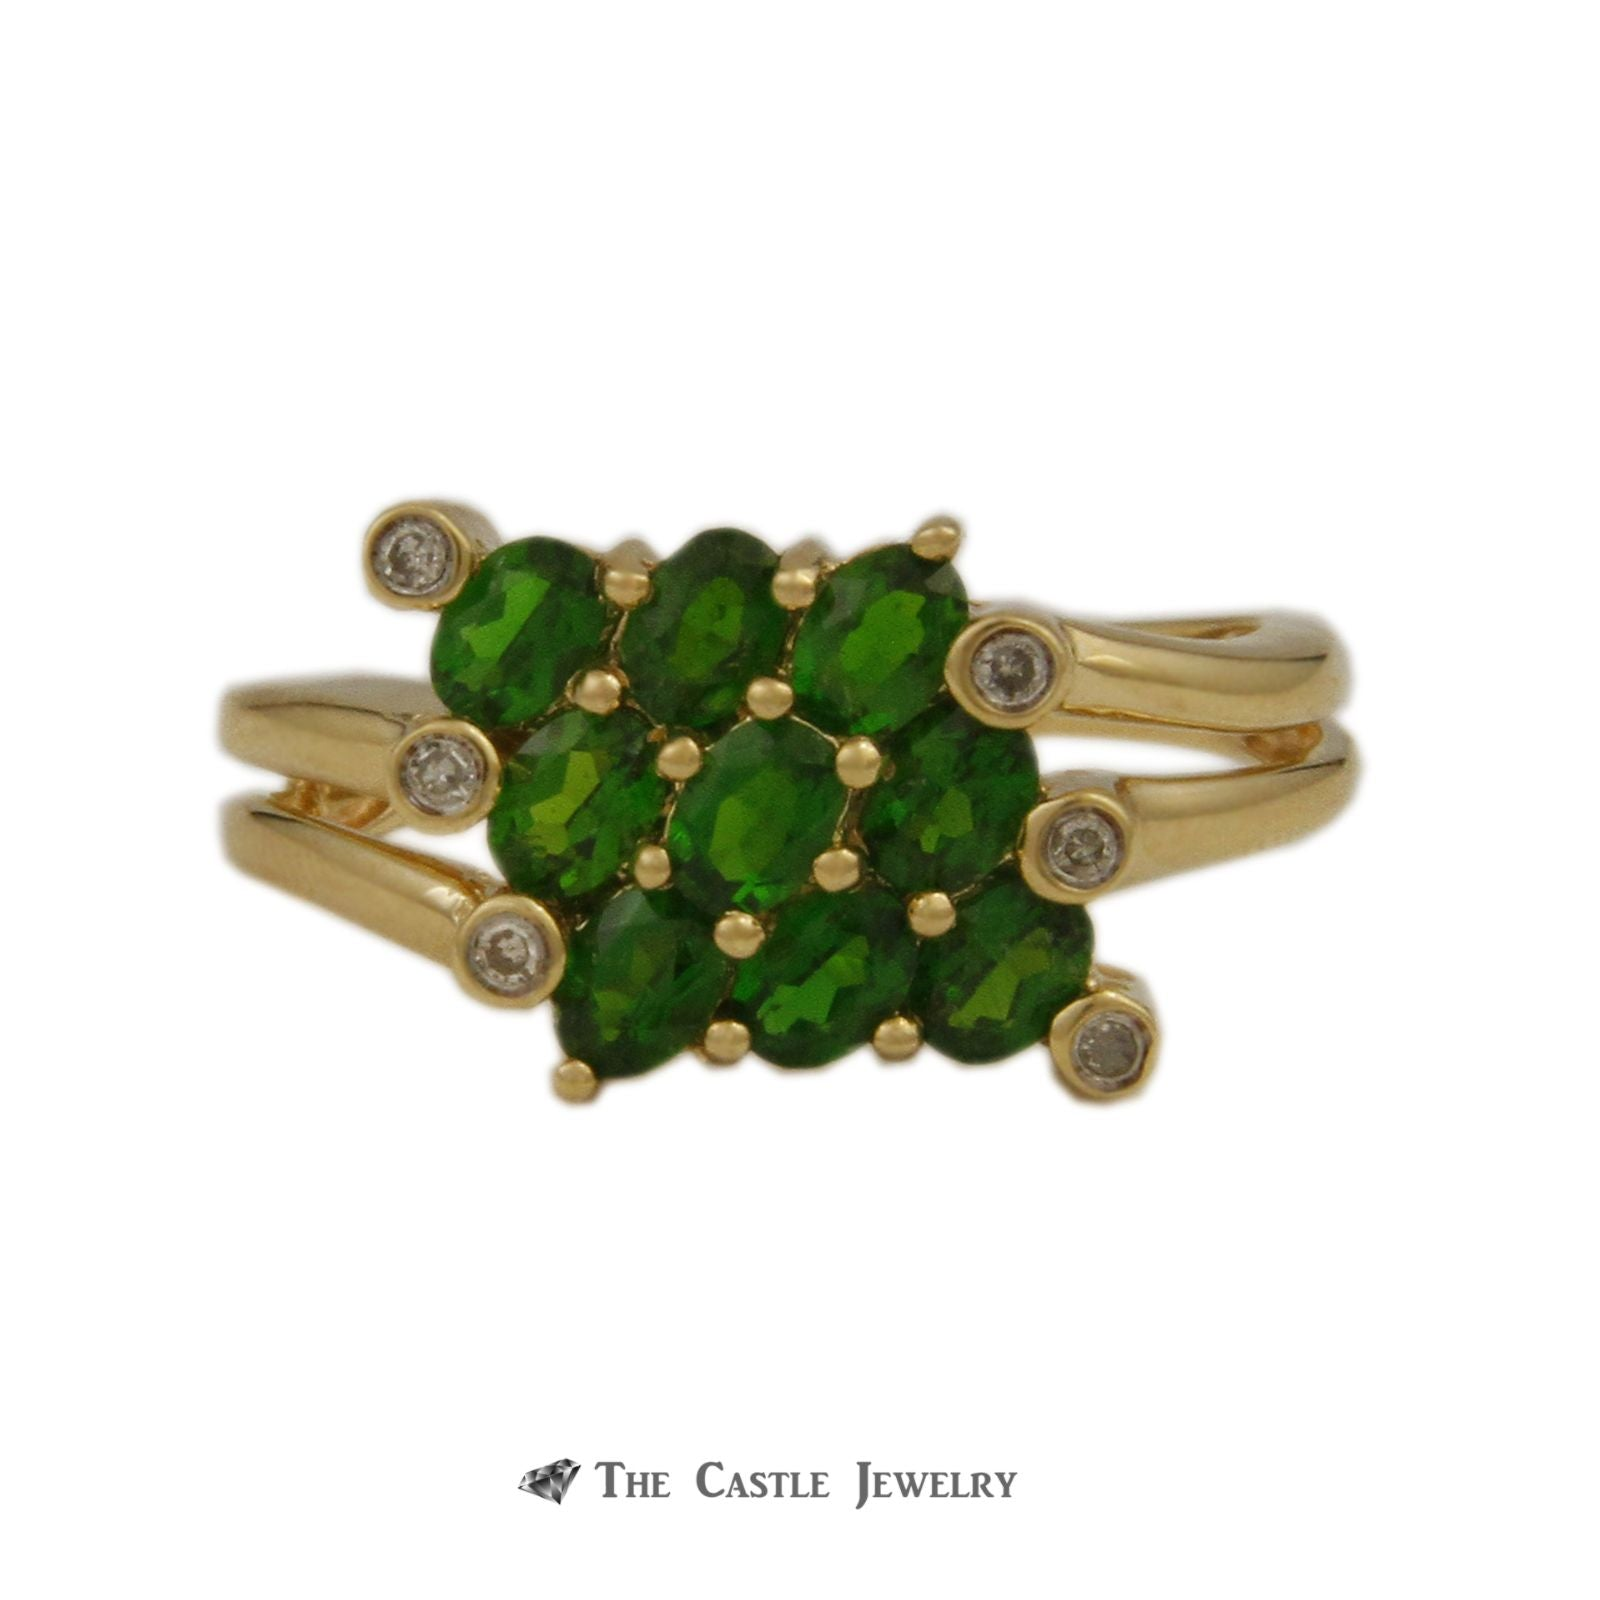 Oval Tsavorite Garnet Cluster Ring with Bezel Set Round Accent Diamond Side